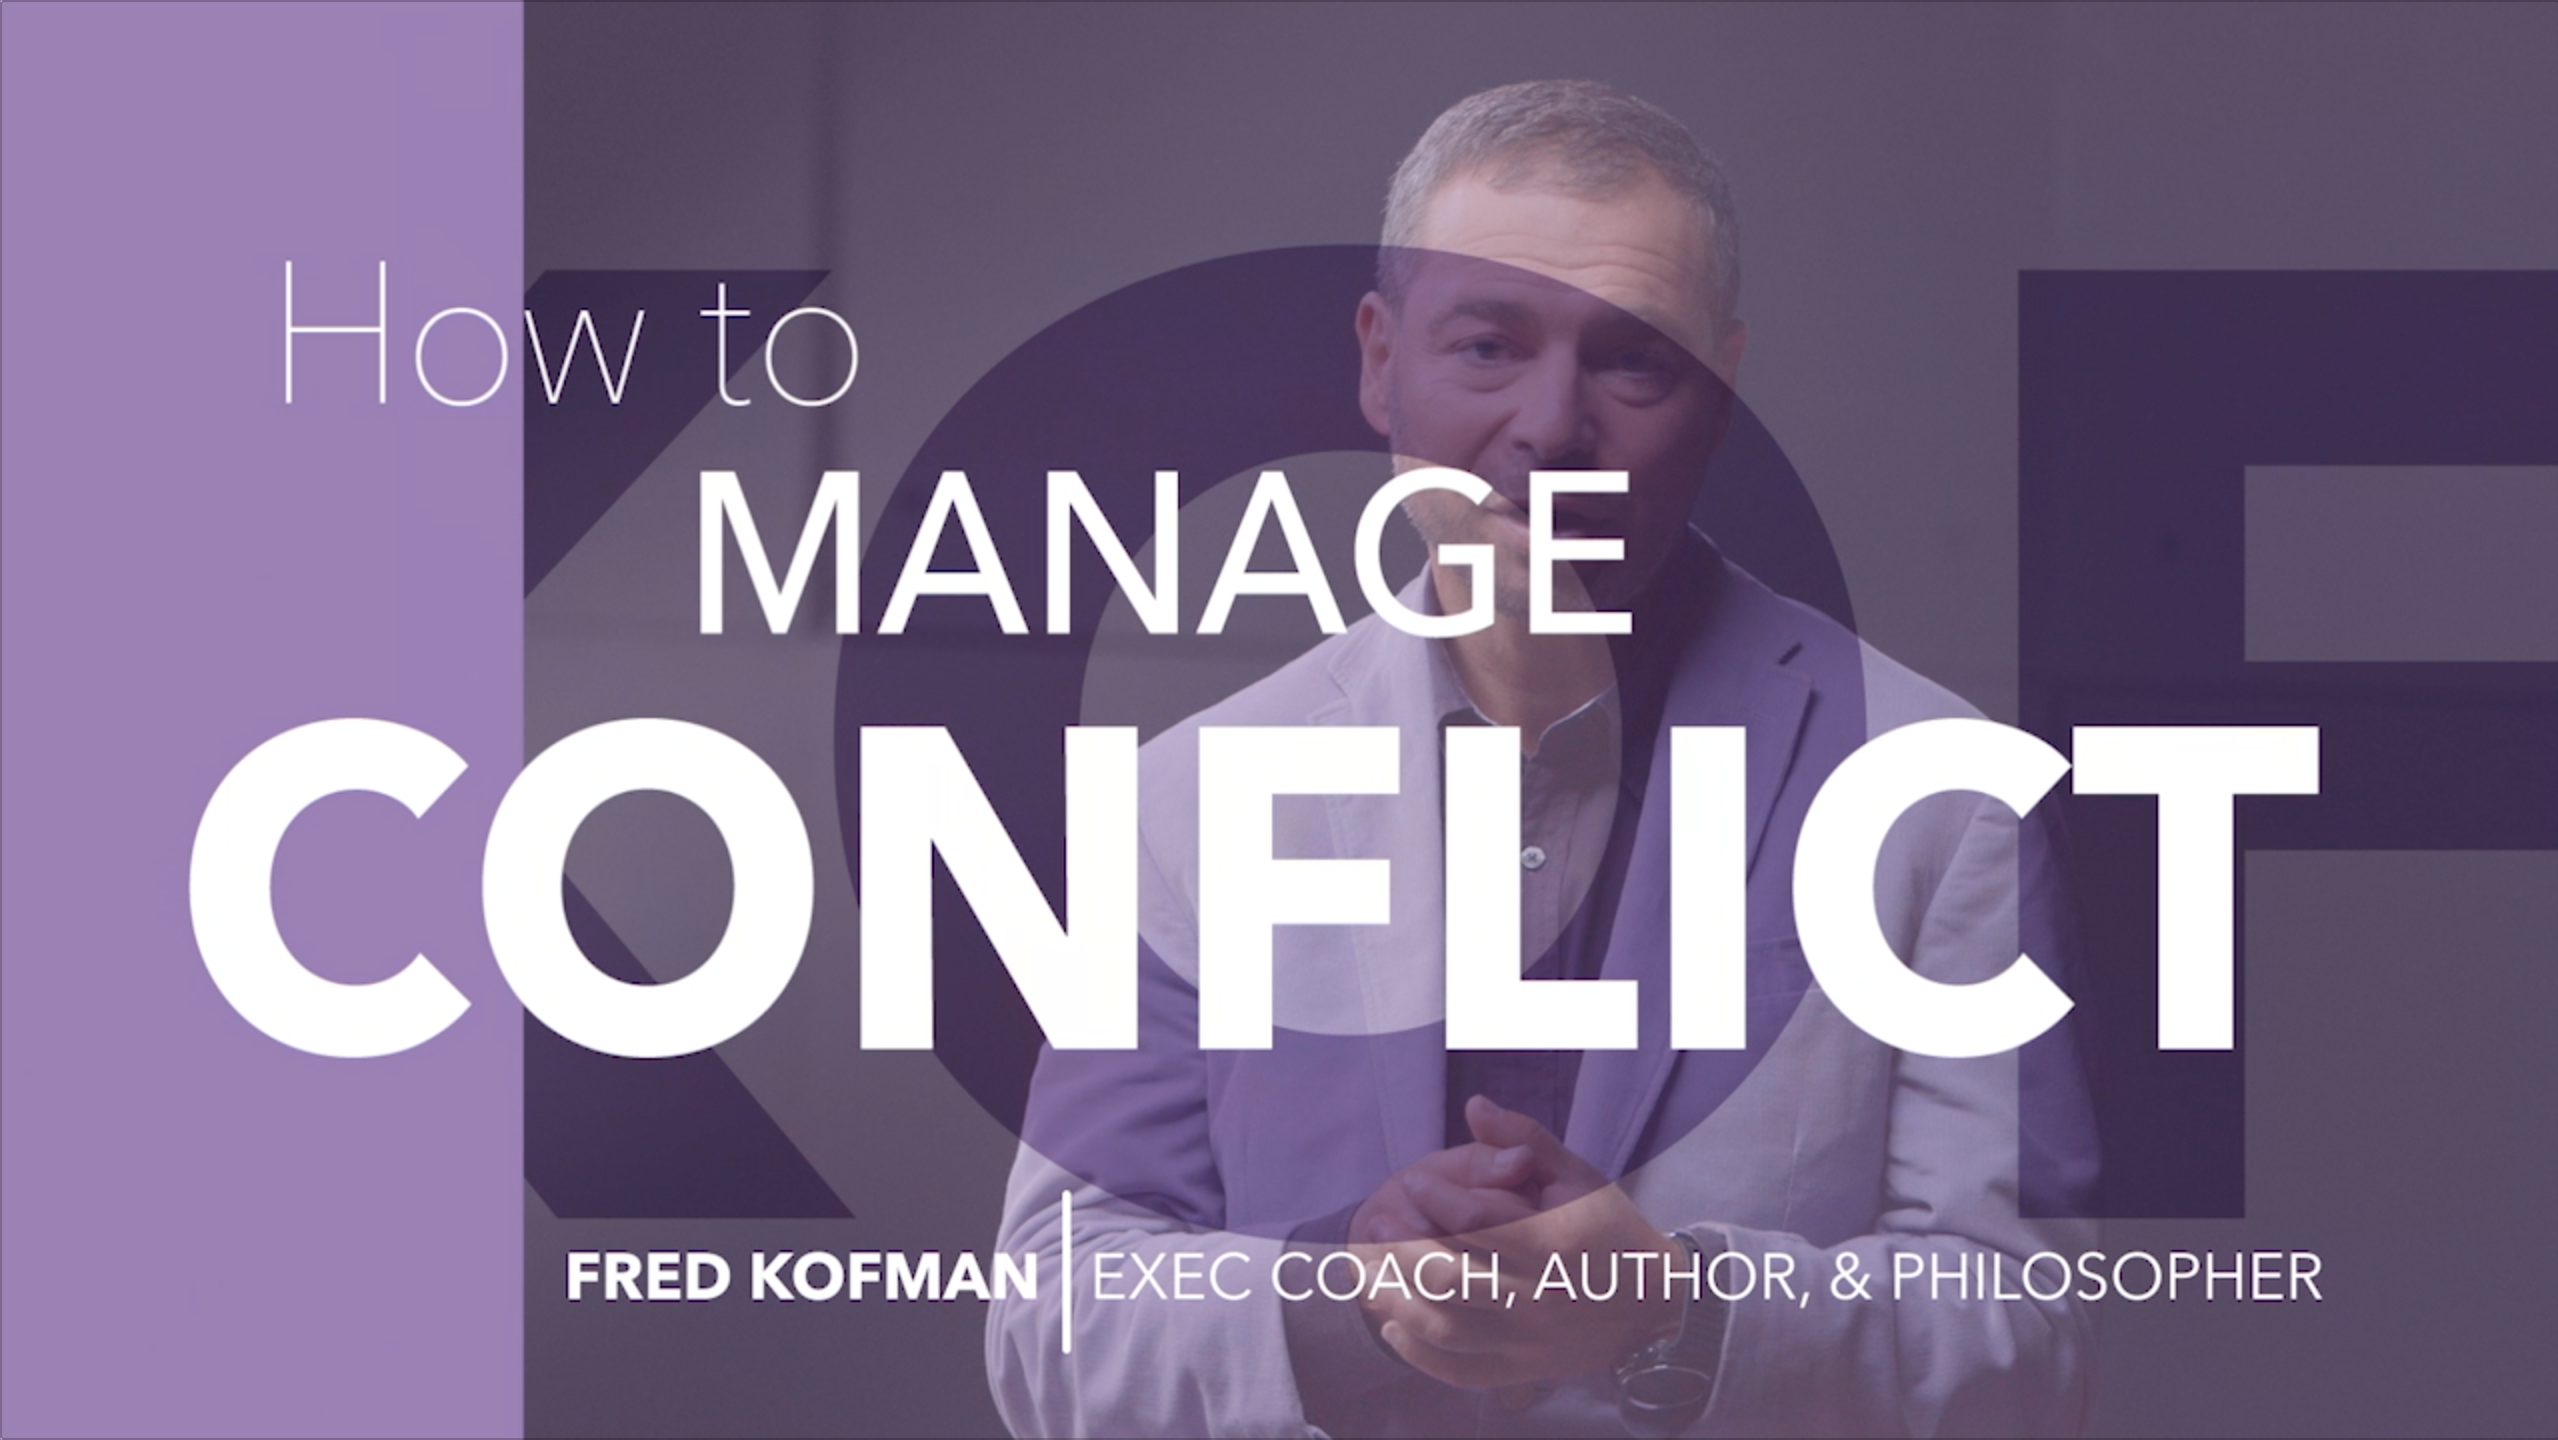 Fred Kofman on Managing Conflict